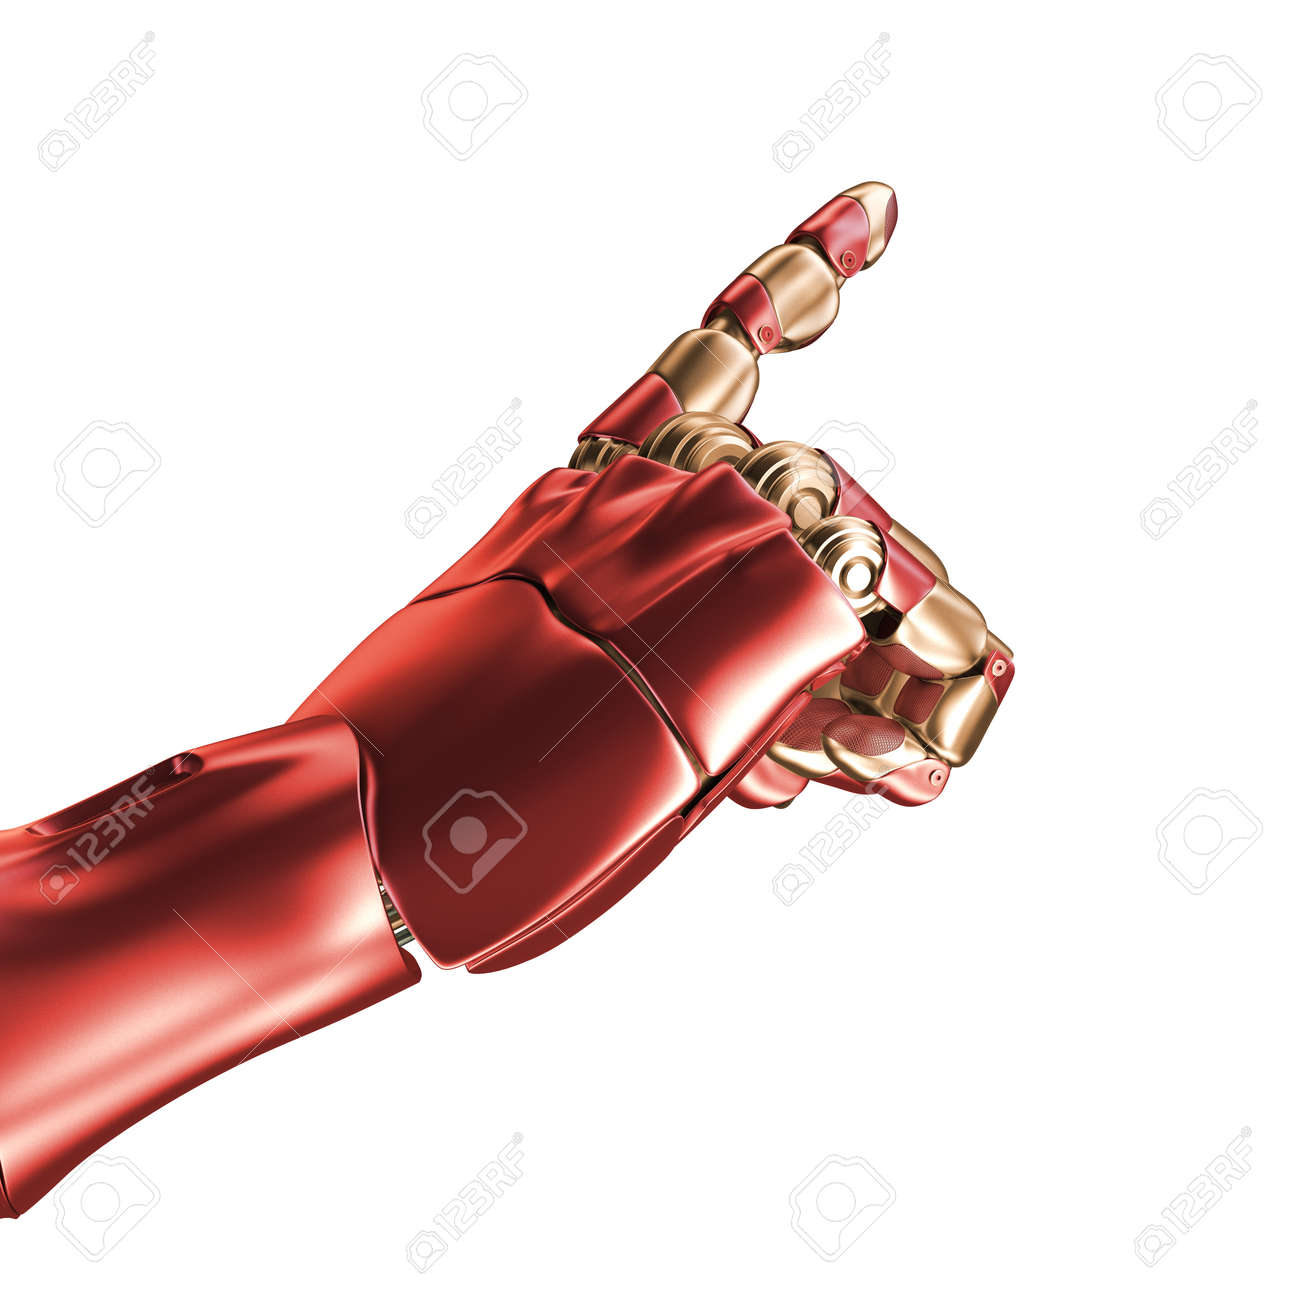 Stock Photo   The Hand Of An Iron Man. Red And Gold Coloring. 3d Rendering.  Template Isolated On White Background.